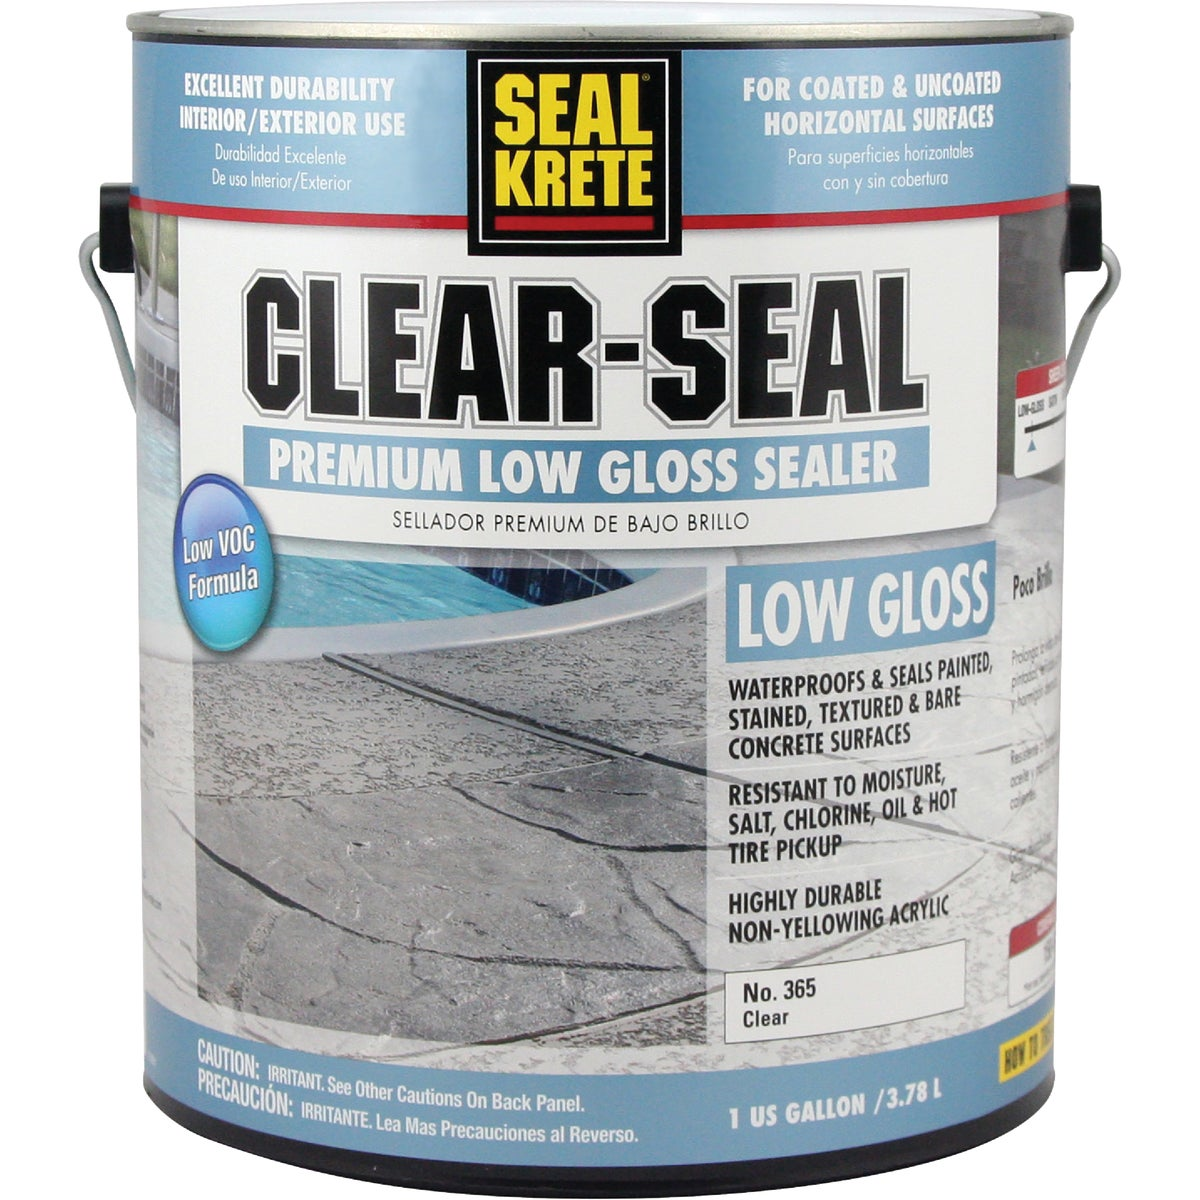 LVOC CLEAR SEALER - 365001 by Convenience Products